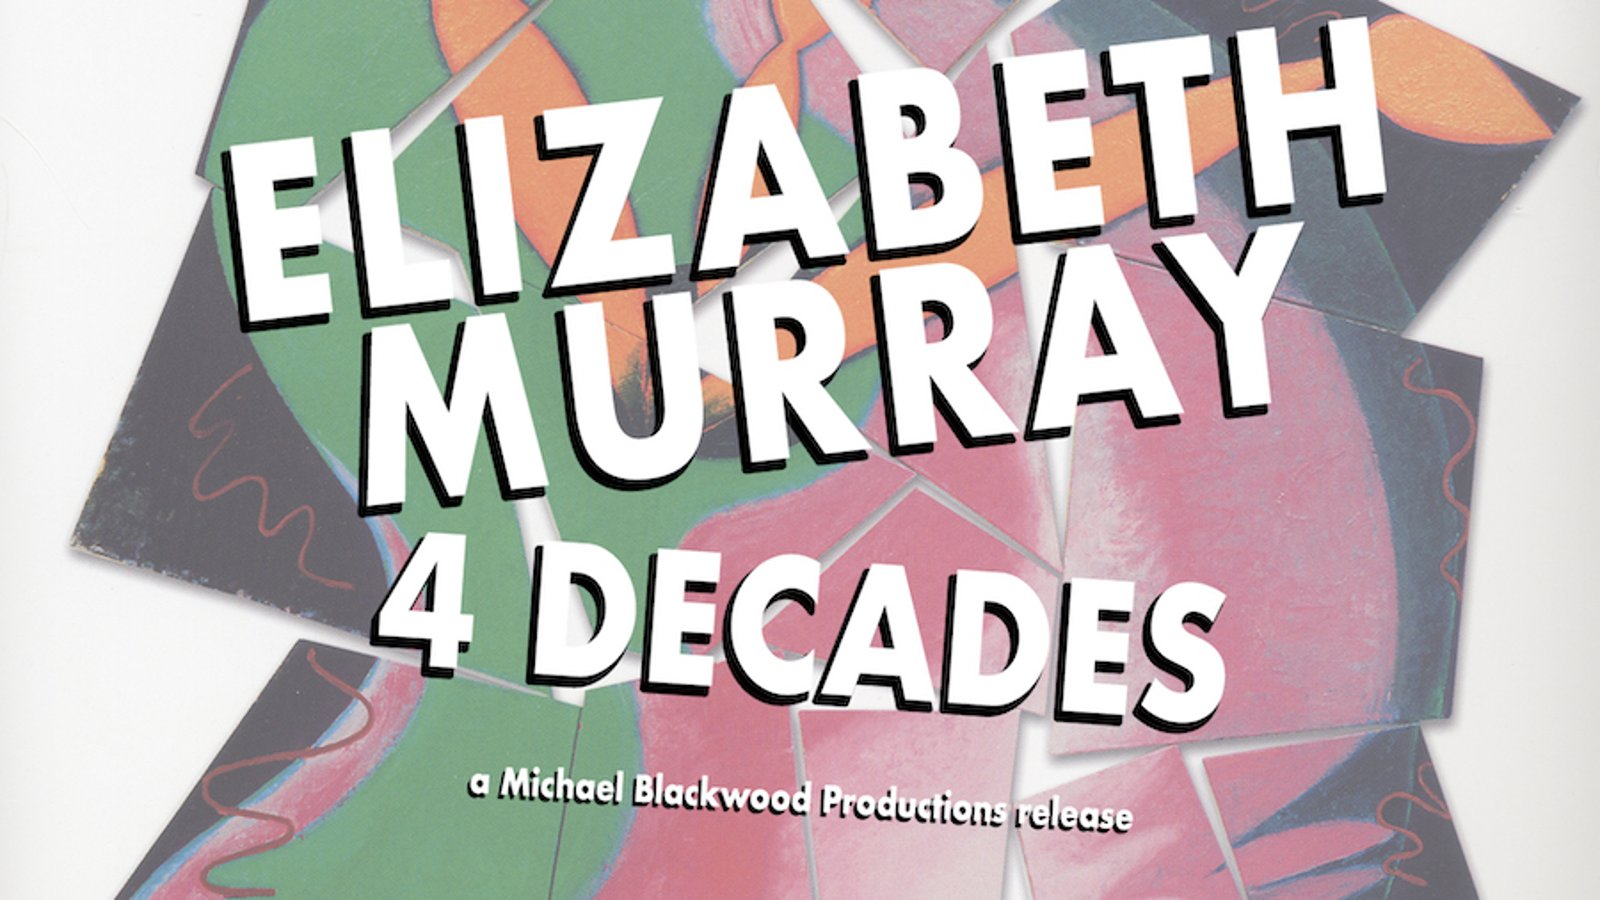 Elizabeth Murray - The Artist Disscusses Her Work and Influences